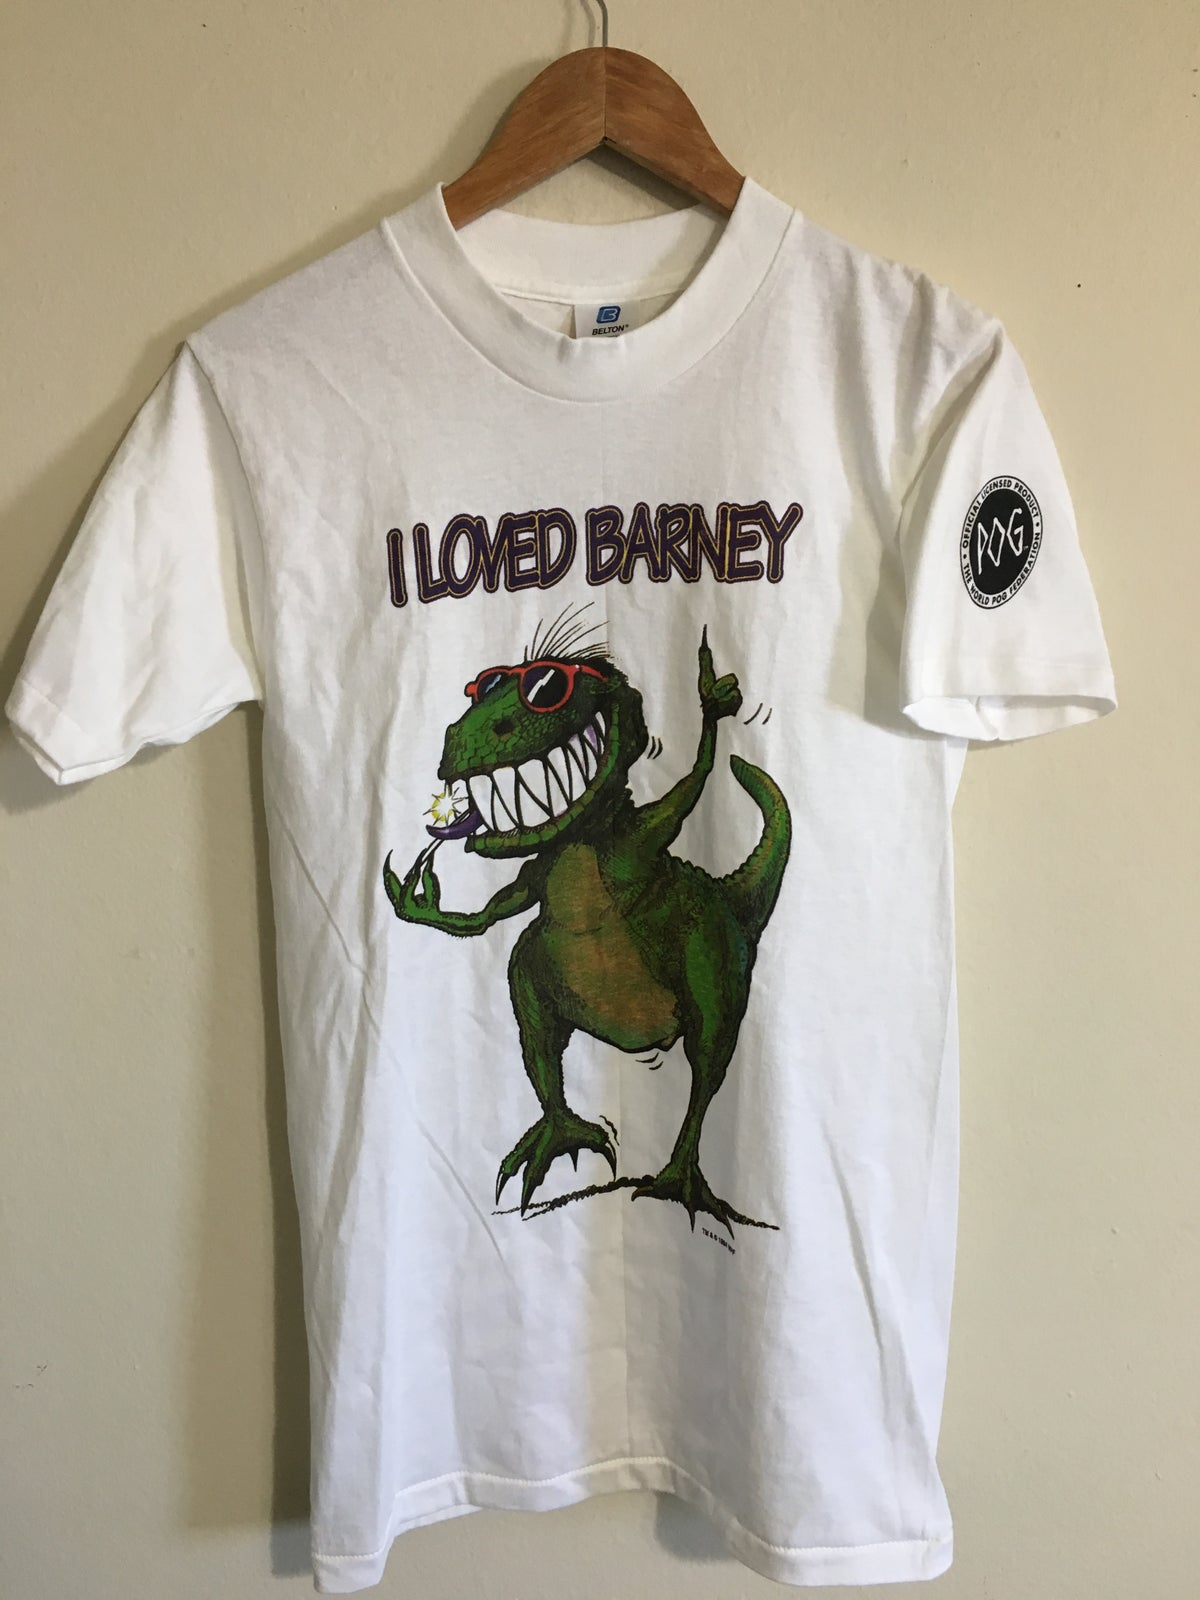 1994 I Loved Barney POG Tee